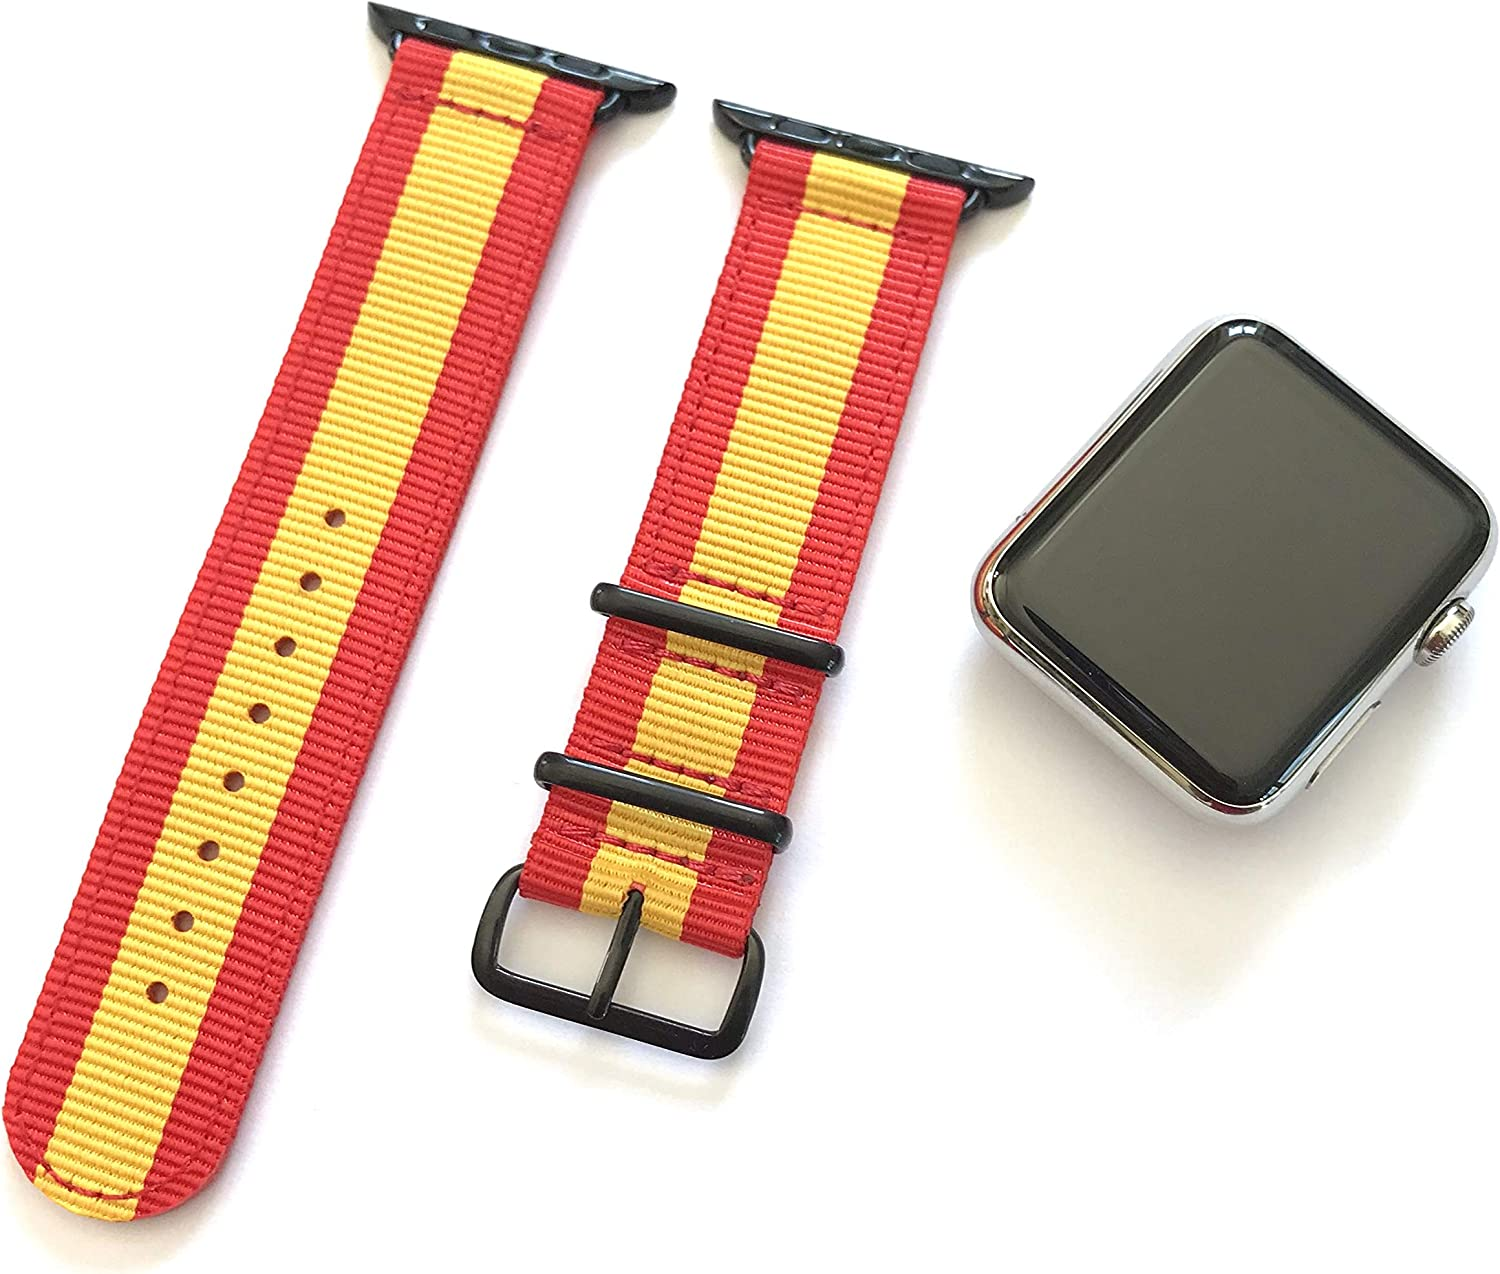 Correa para Apple Watch Nylon NATO Rojo Amarillo + adaptadores Color Plateado (42mm): Amazon.es: Electrónica